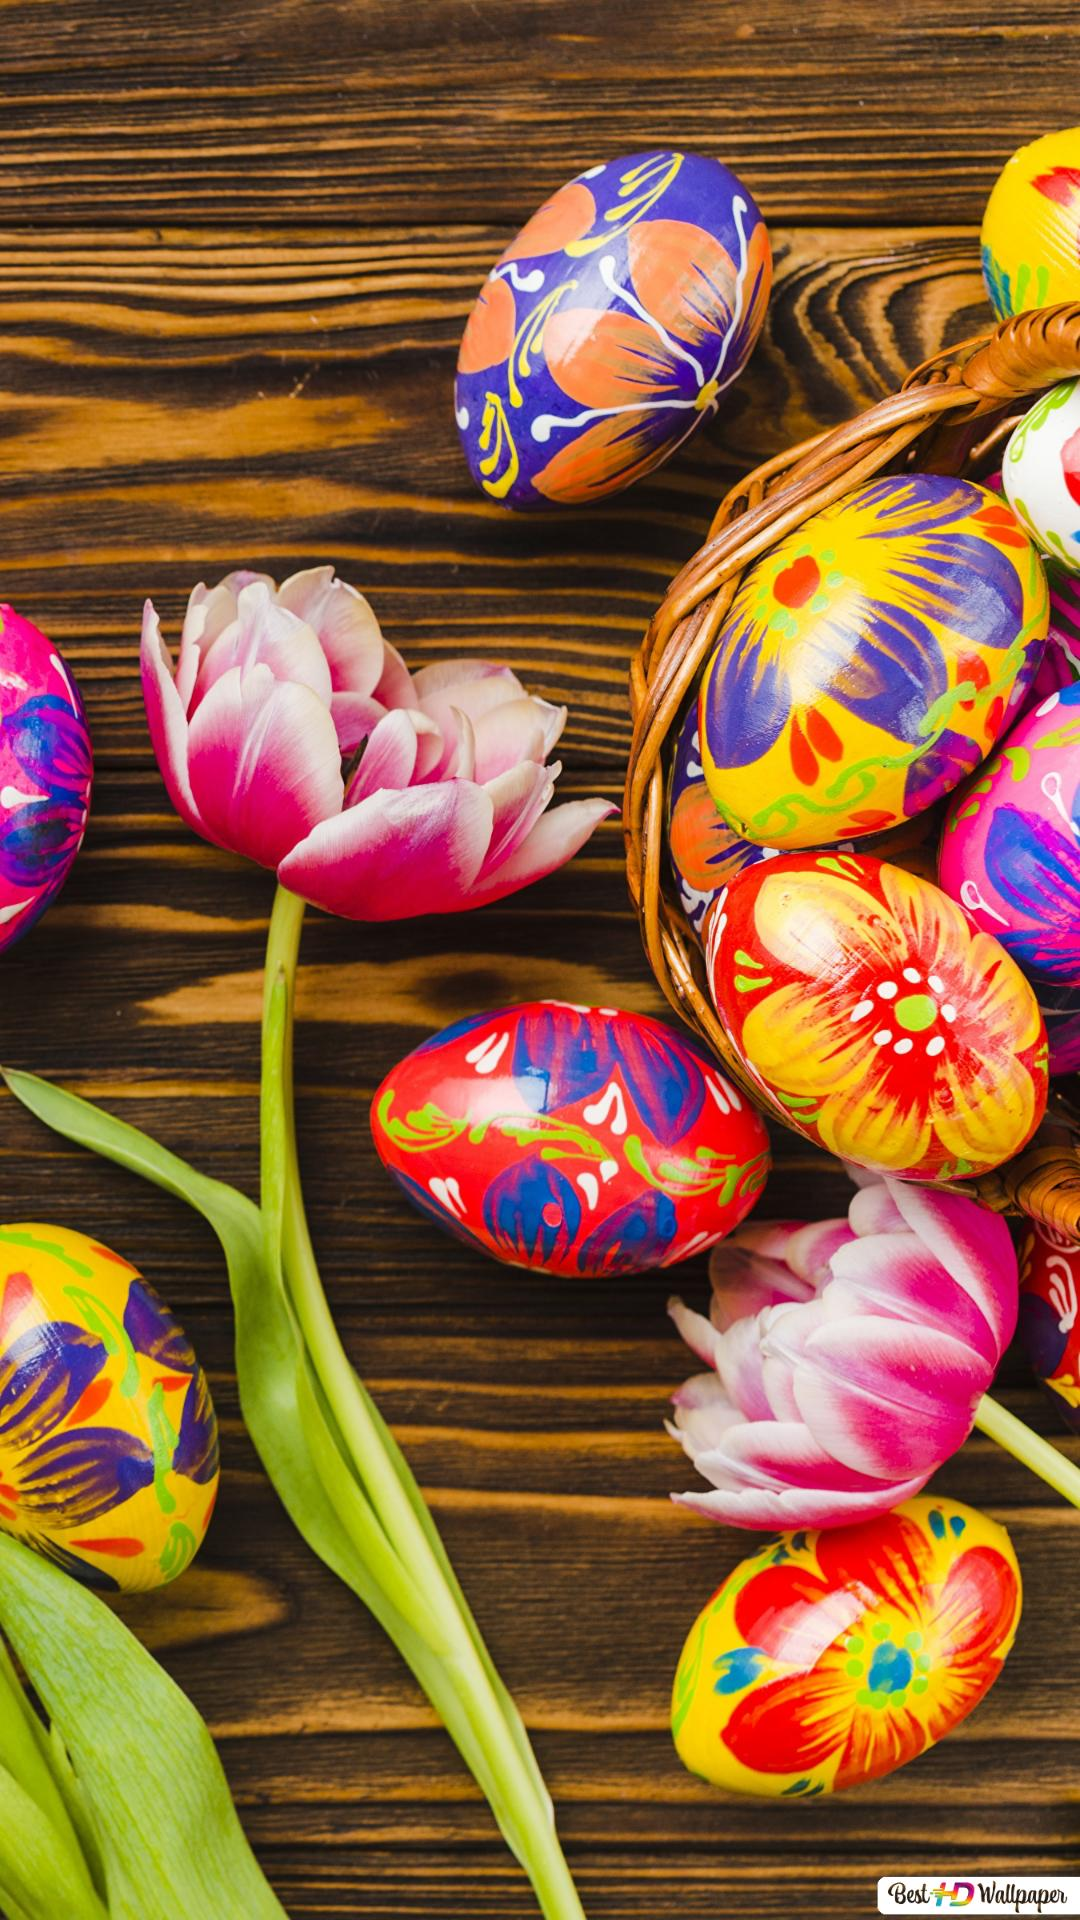 Floral Easter Eggs Hd Wallpaper Download